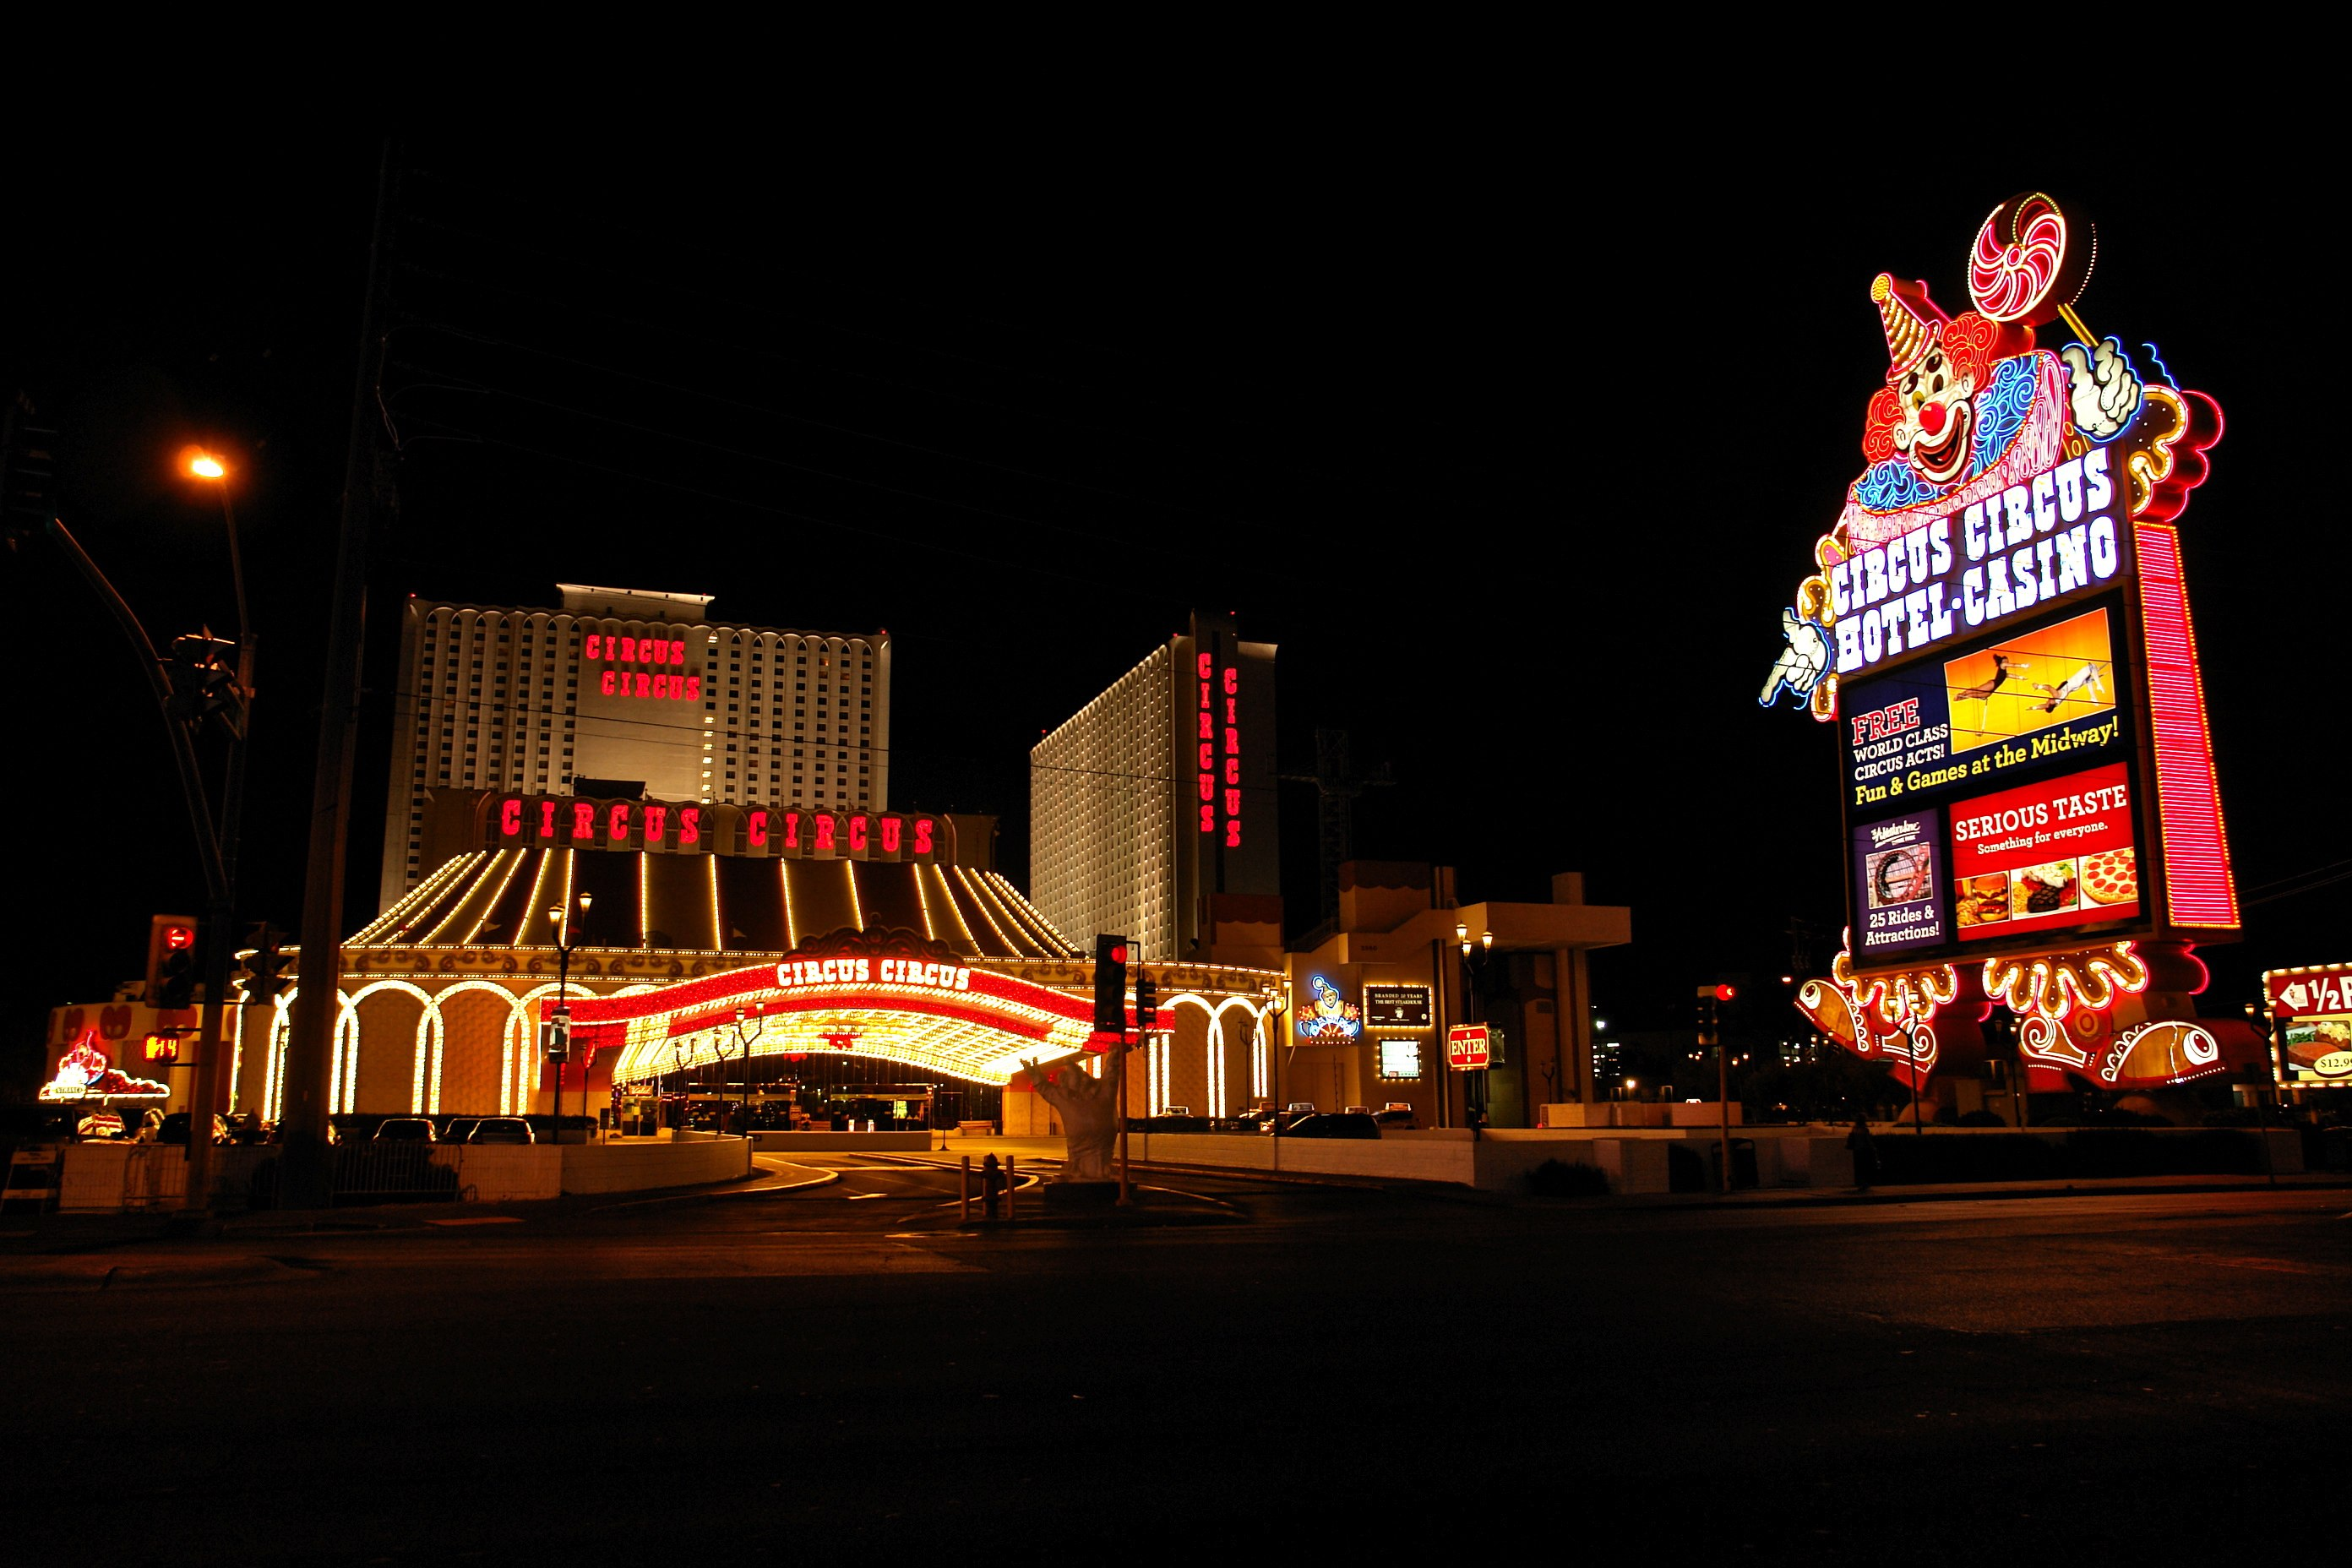 circus casino in las vegas